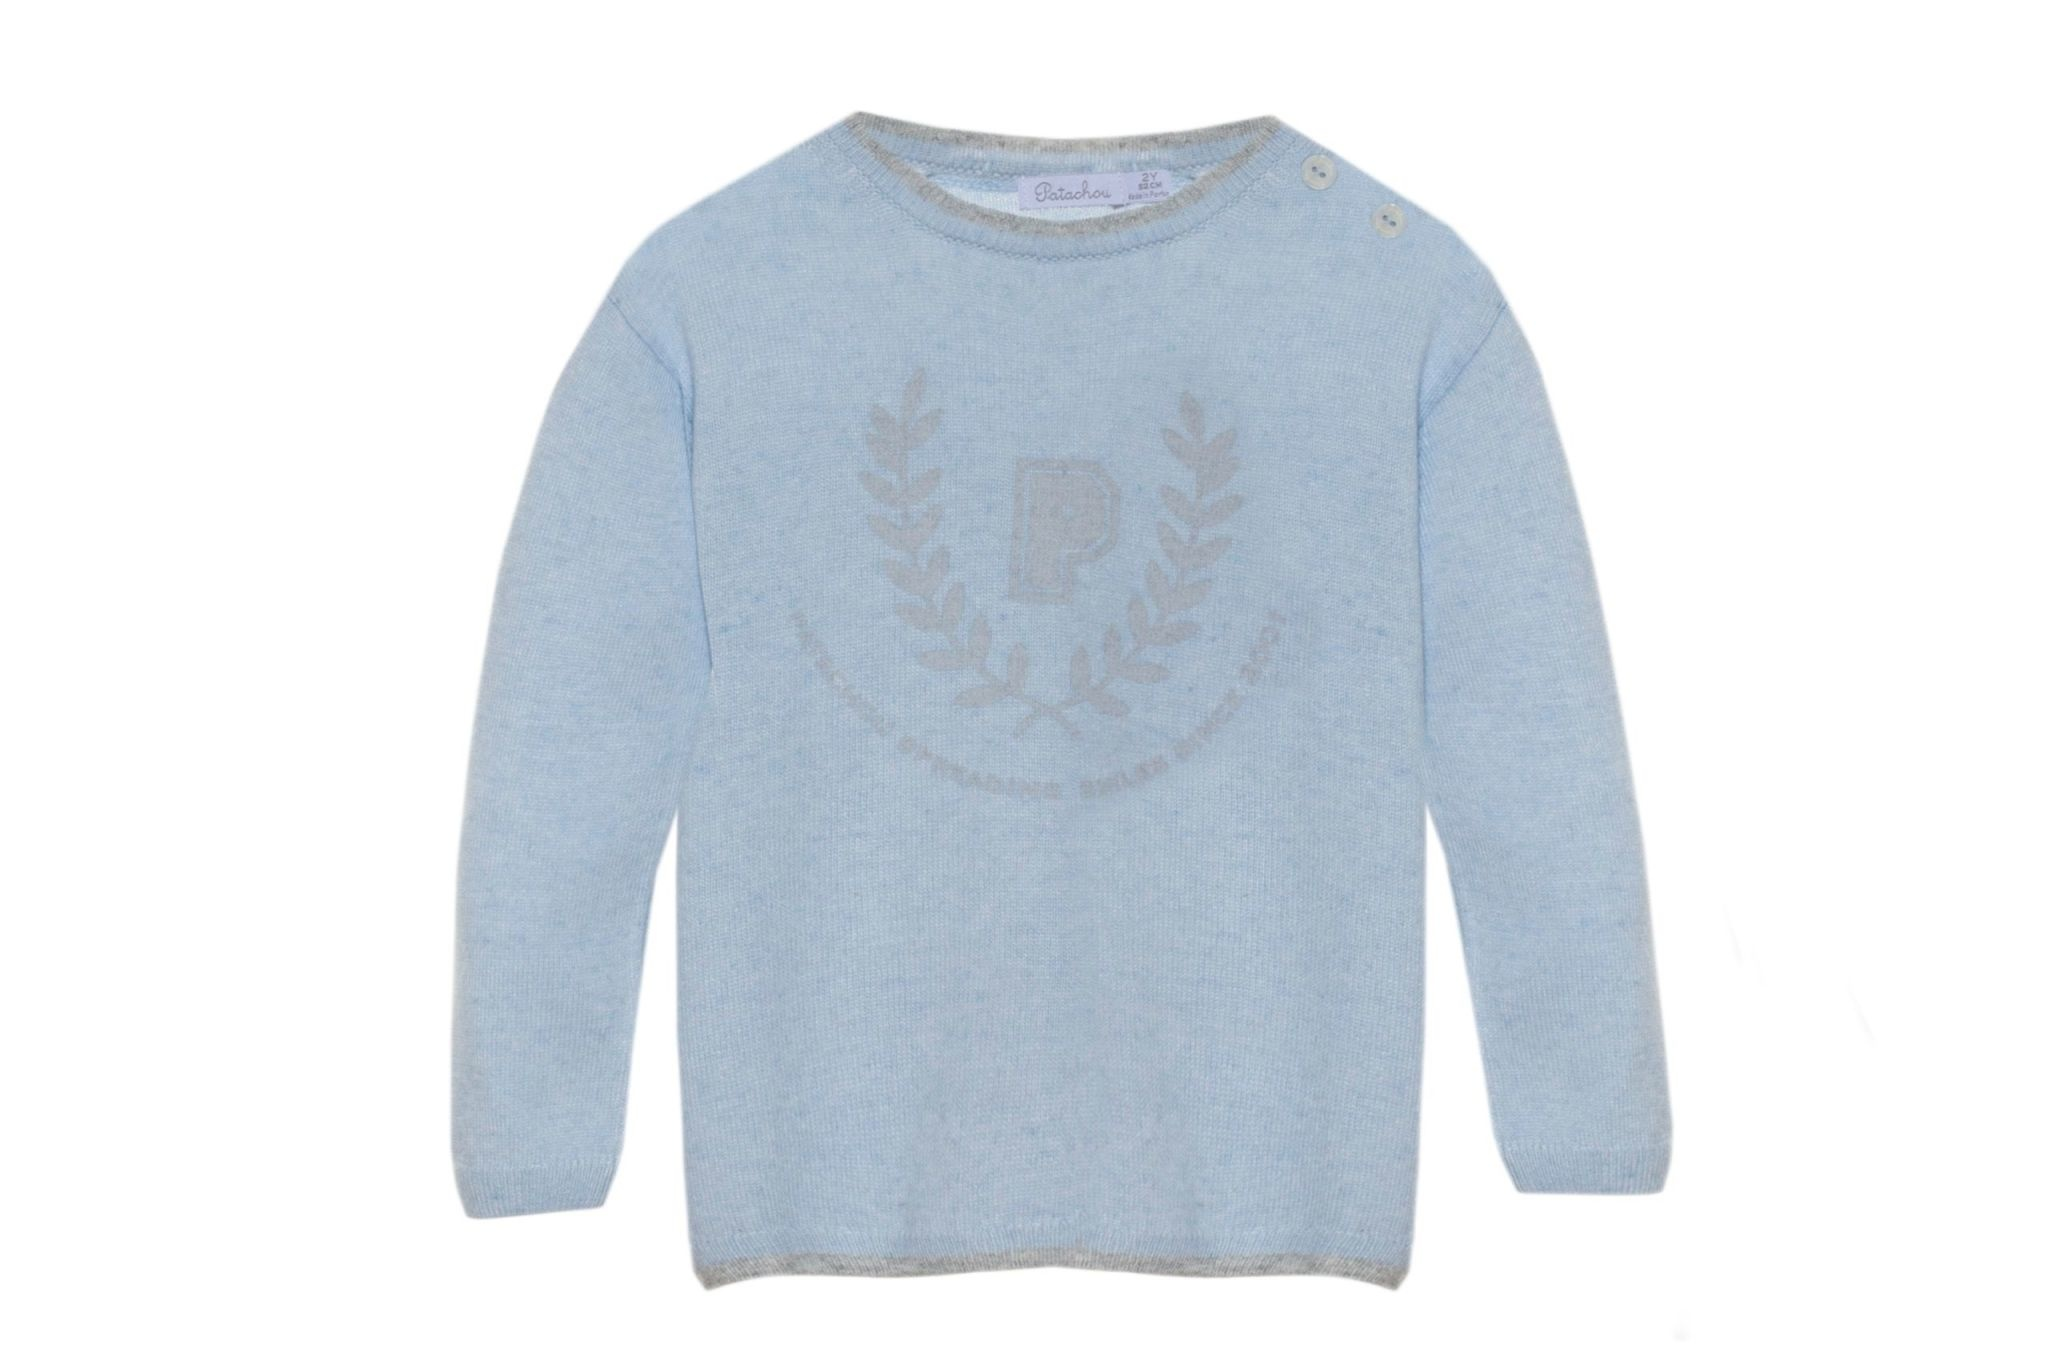 Patachou Patachou Knit Sweater with Crest